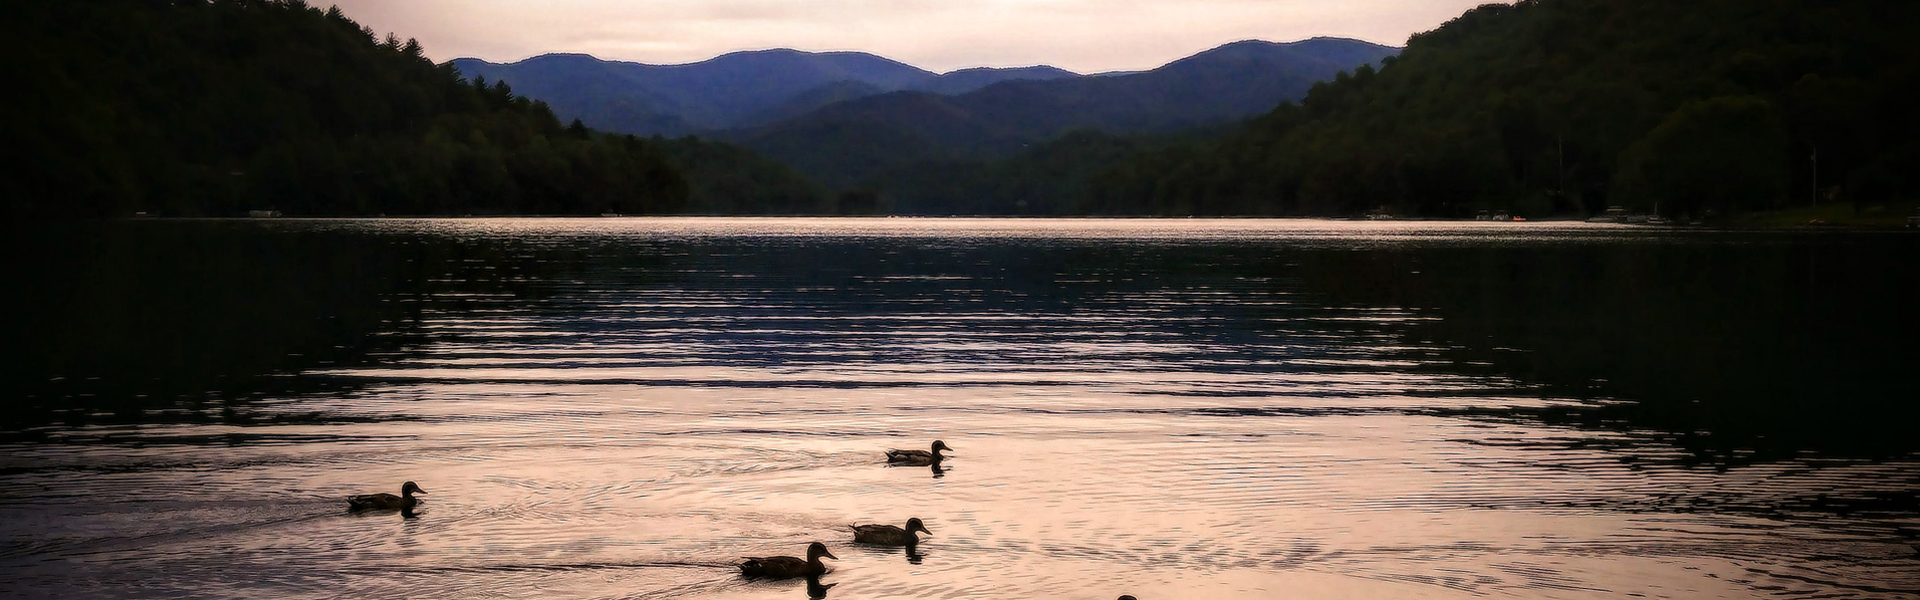 Mtn Lake Ducks